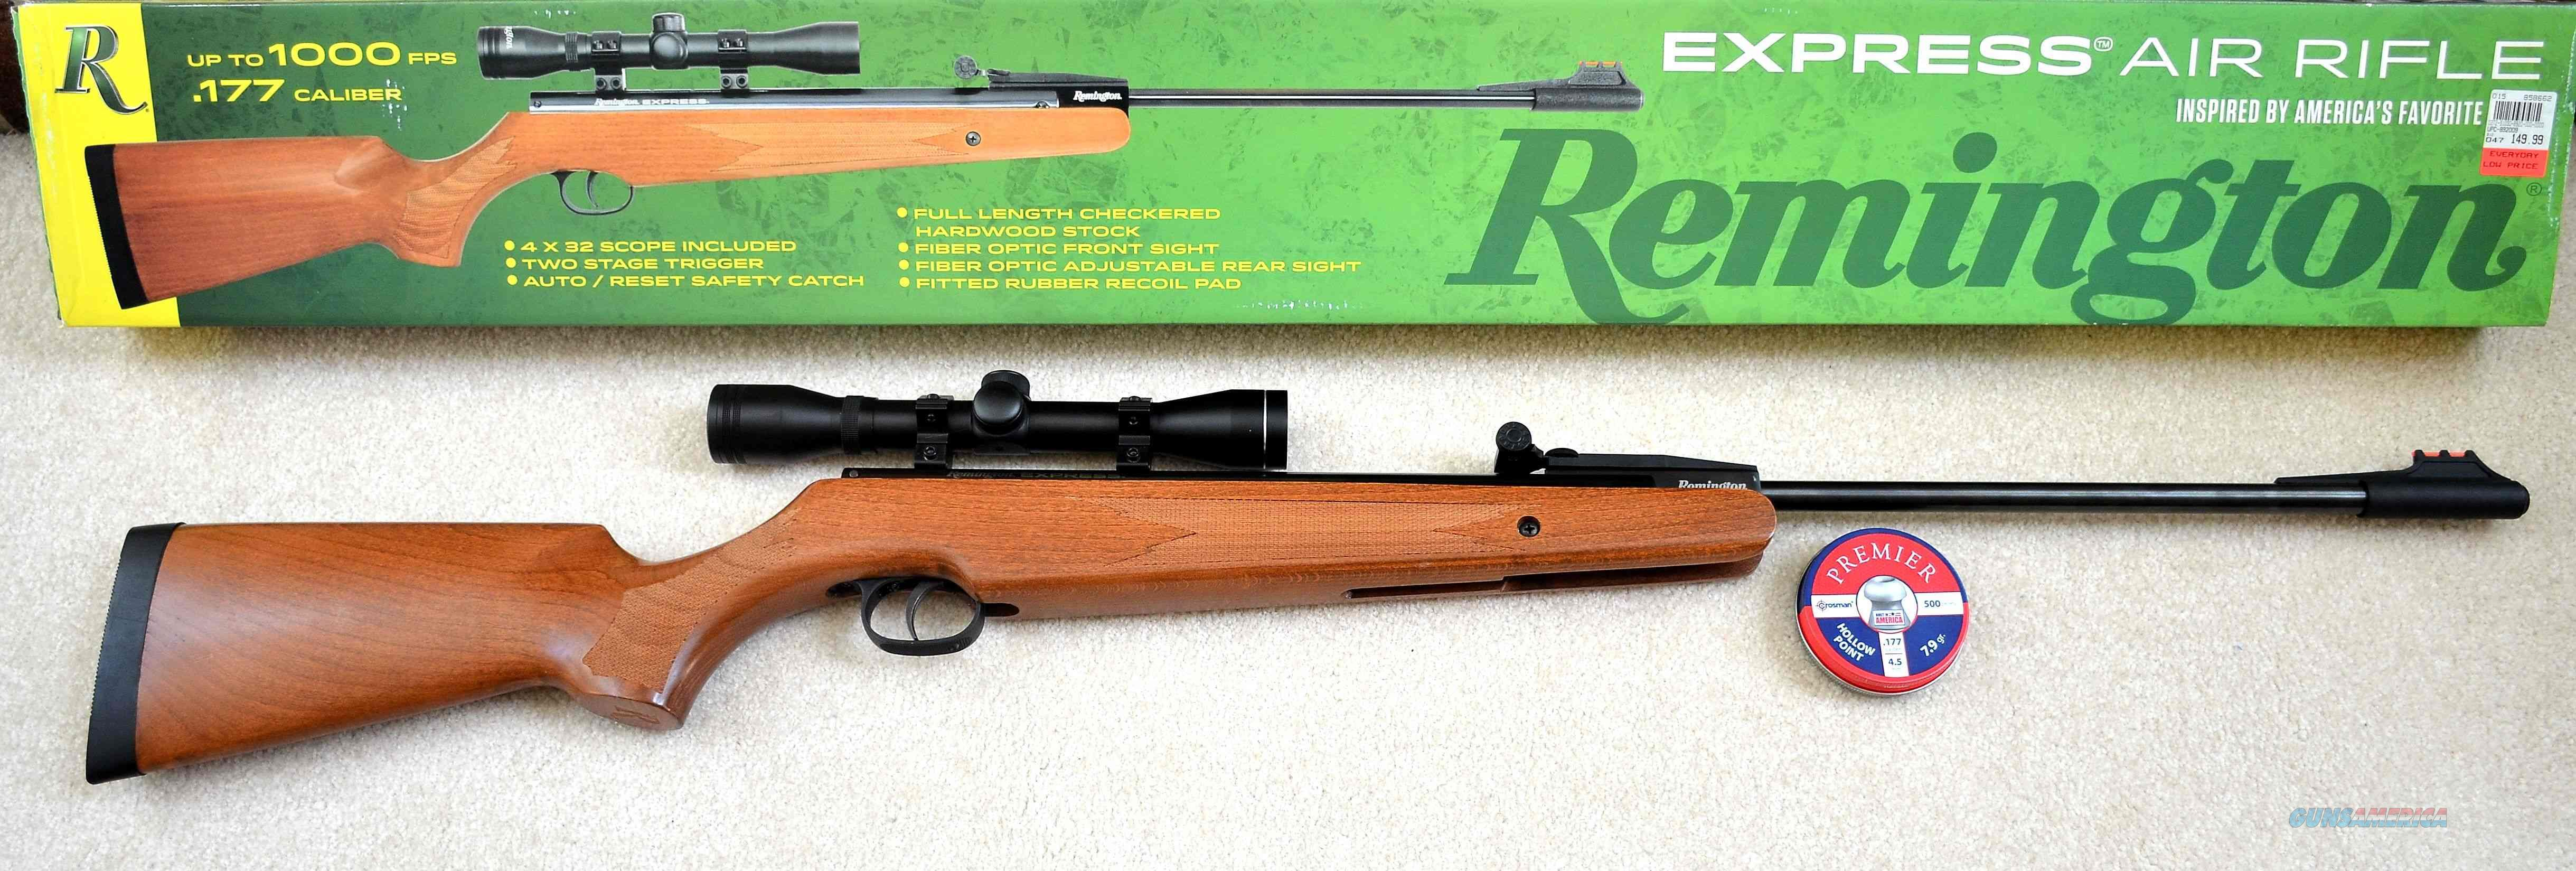 Remington Express 0.177 Air Rifle w Wood Stock  Non-Guns > Air Rifles - Pistols > Adult High Velocity